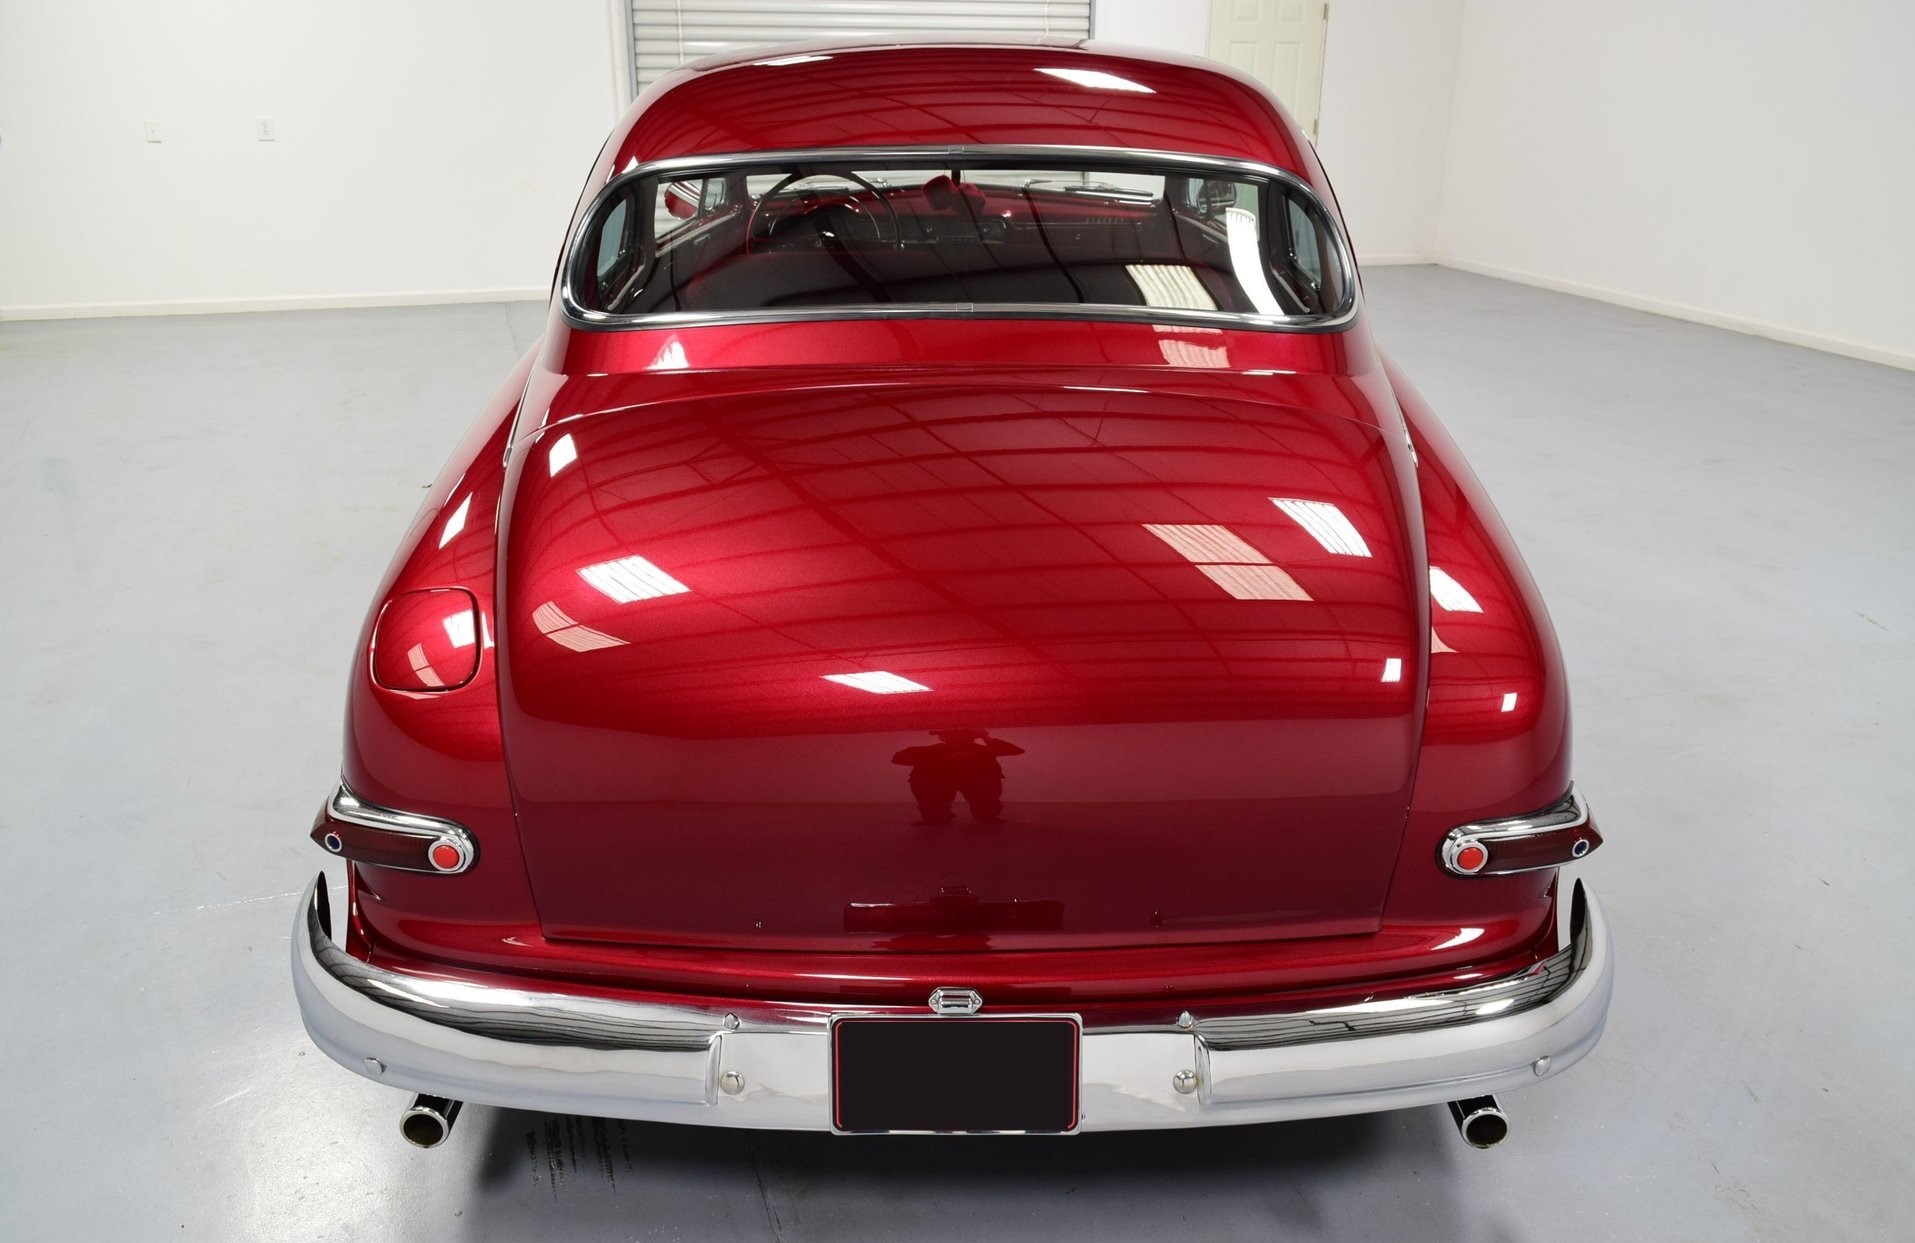 Coupe Eight 239 ci V8 Manuelle 195045 754€